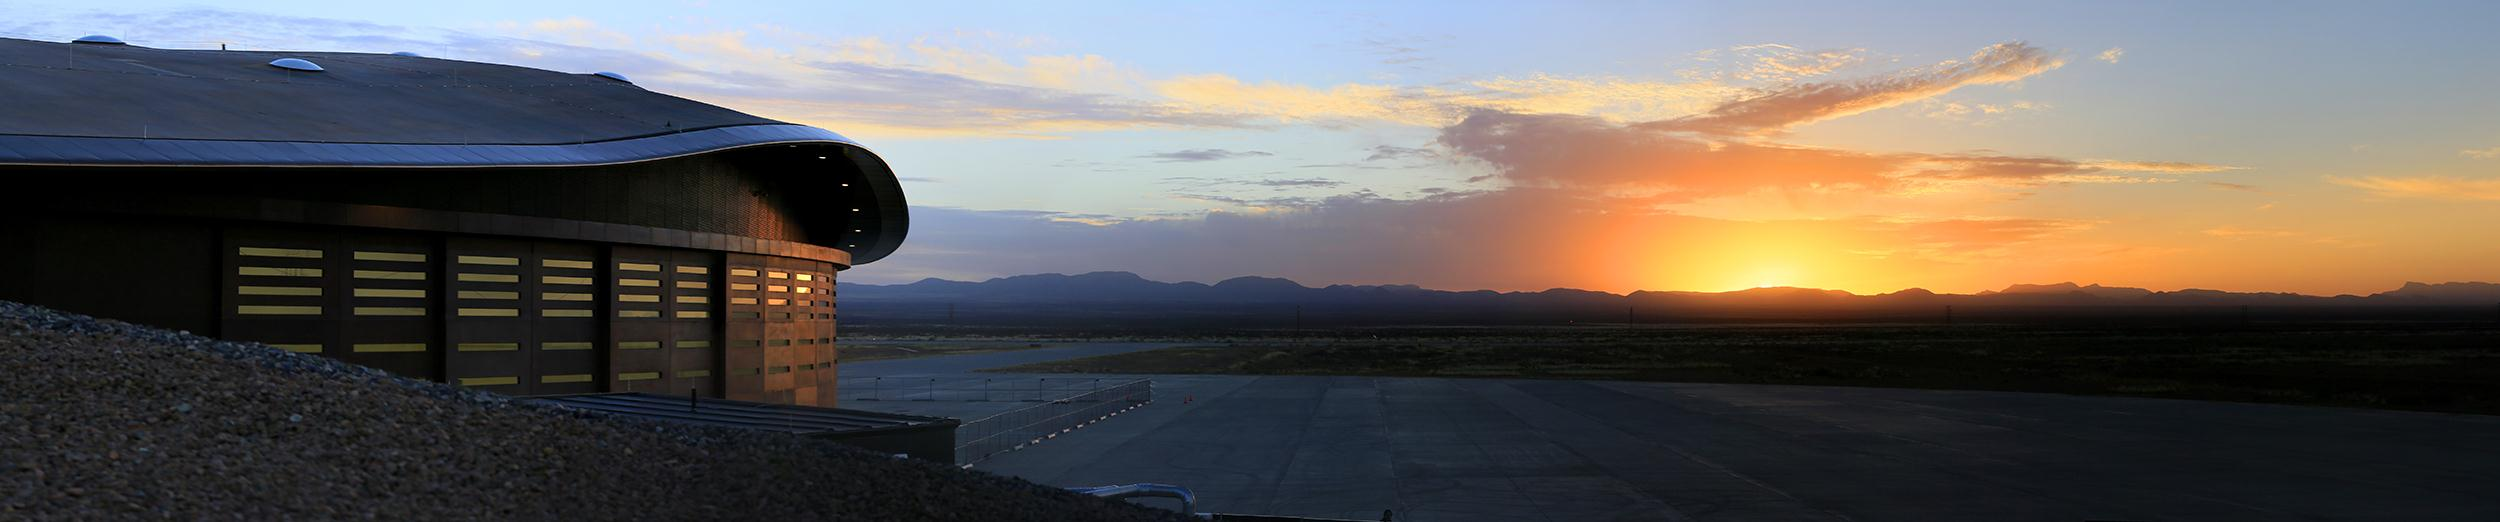 Image: Spaceport America in the New Mexico desert is ready for Virgin Galactic to move in and begin operations.